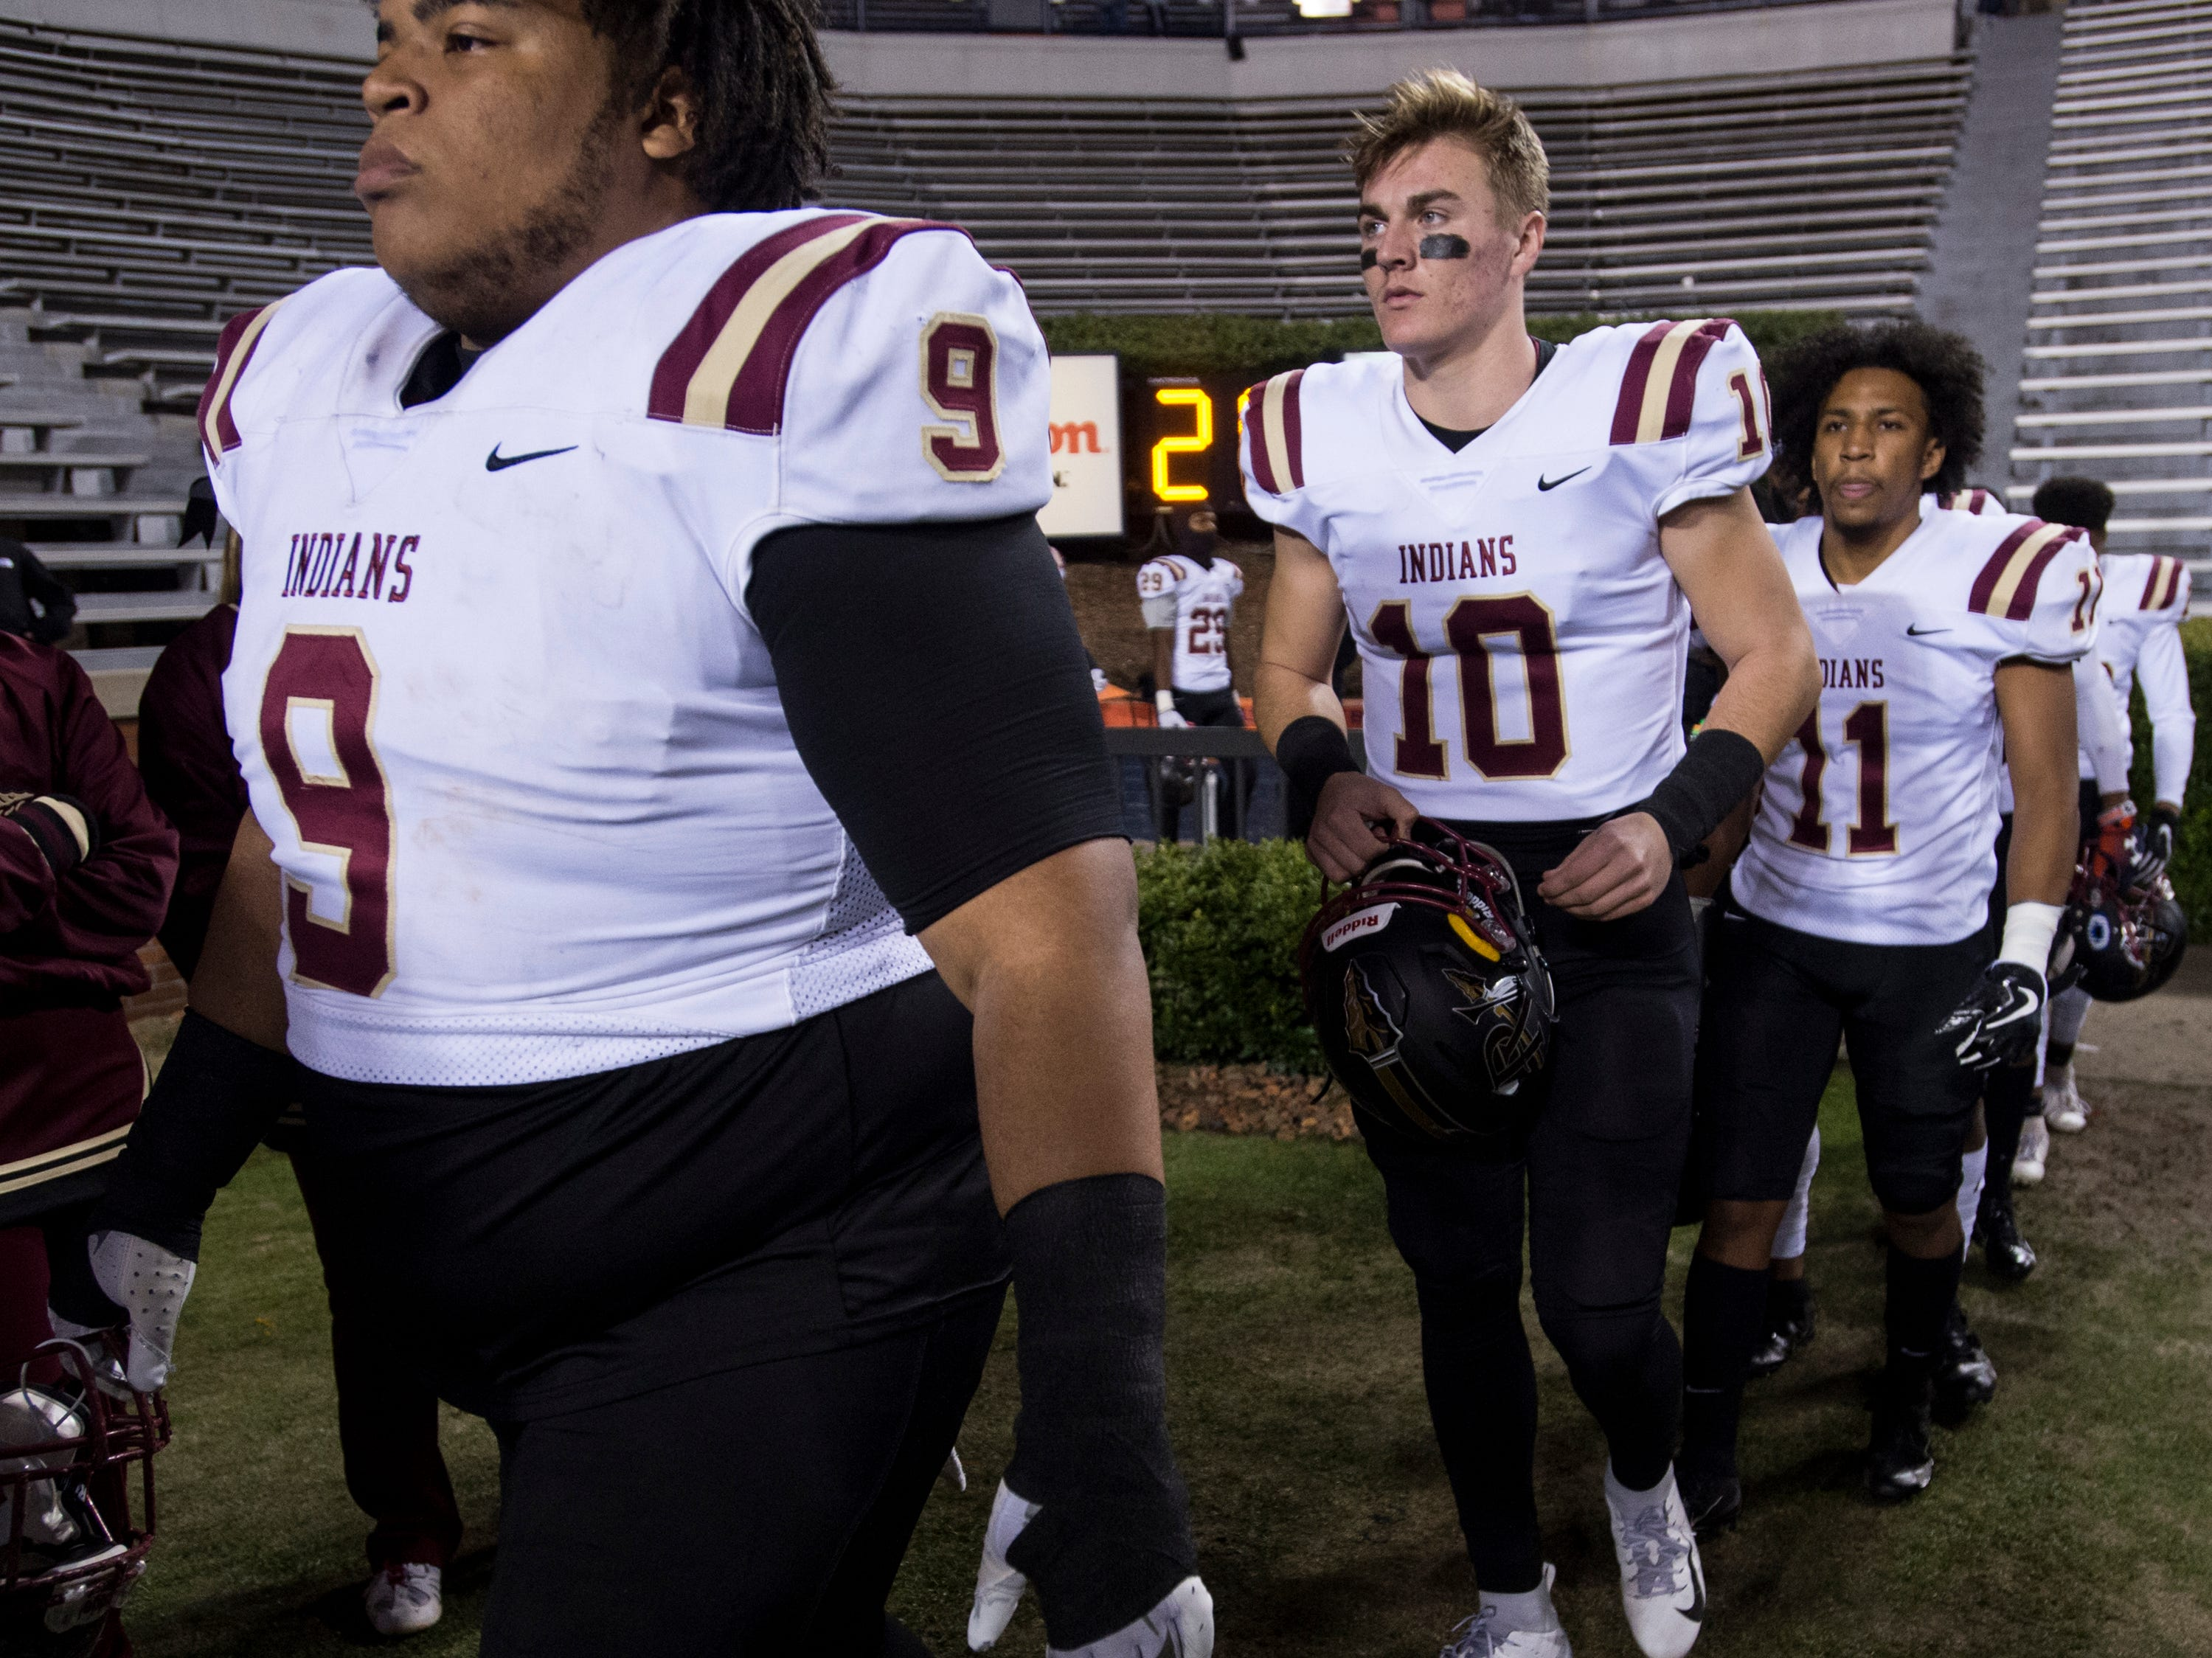 Pinson Valley's Bo Nix (10) takes the field with his team before the Class 6A state championship at Jordan-Hare Stadium in Auburn, Ala., on Friday, Dec. 7, 2018. Pinson Valley leads Saraland 12-3 at halftime.